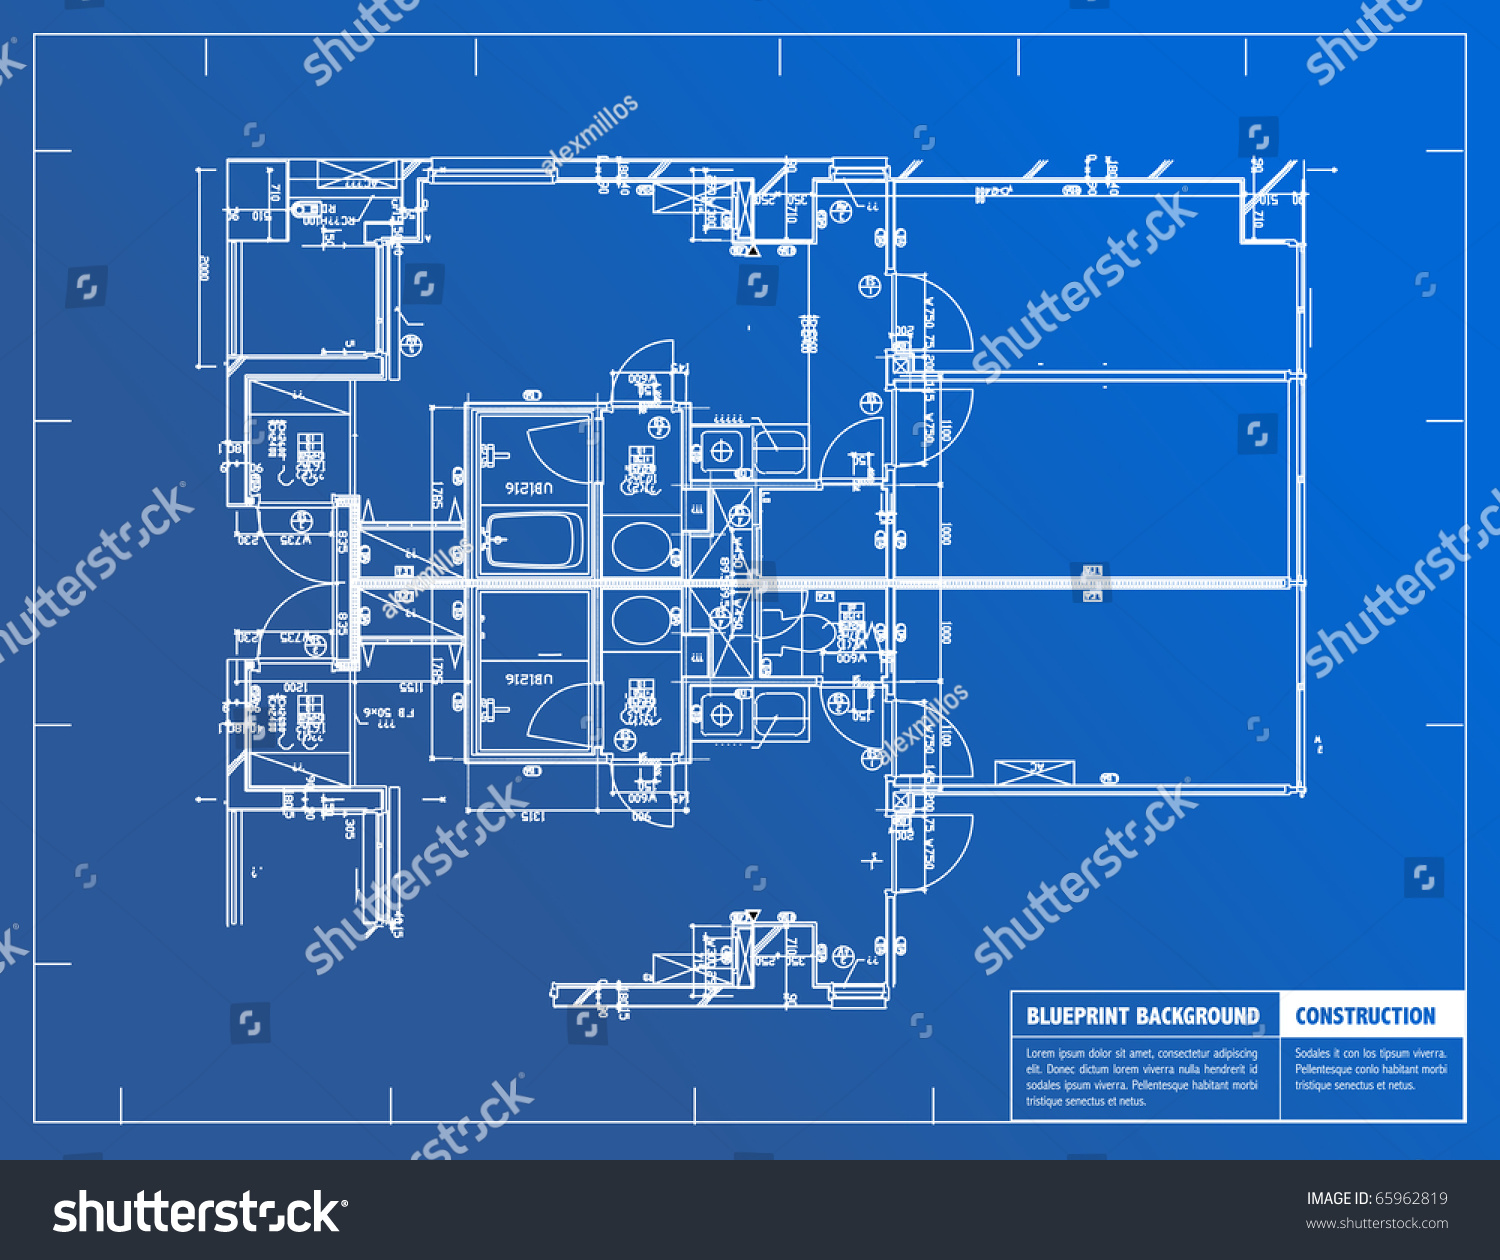 Sample architectural blueprints over blue background stock for Blueprints for my house